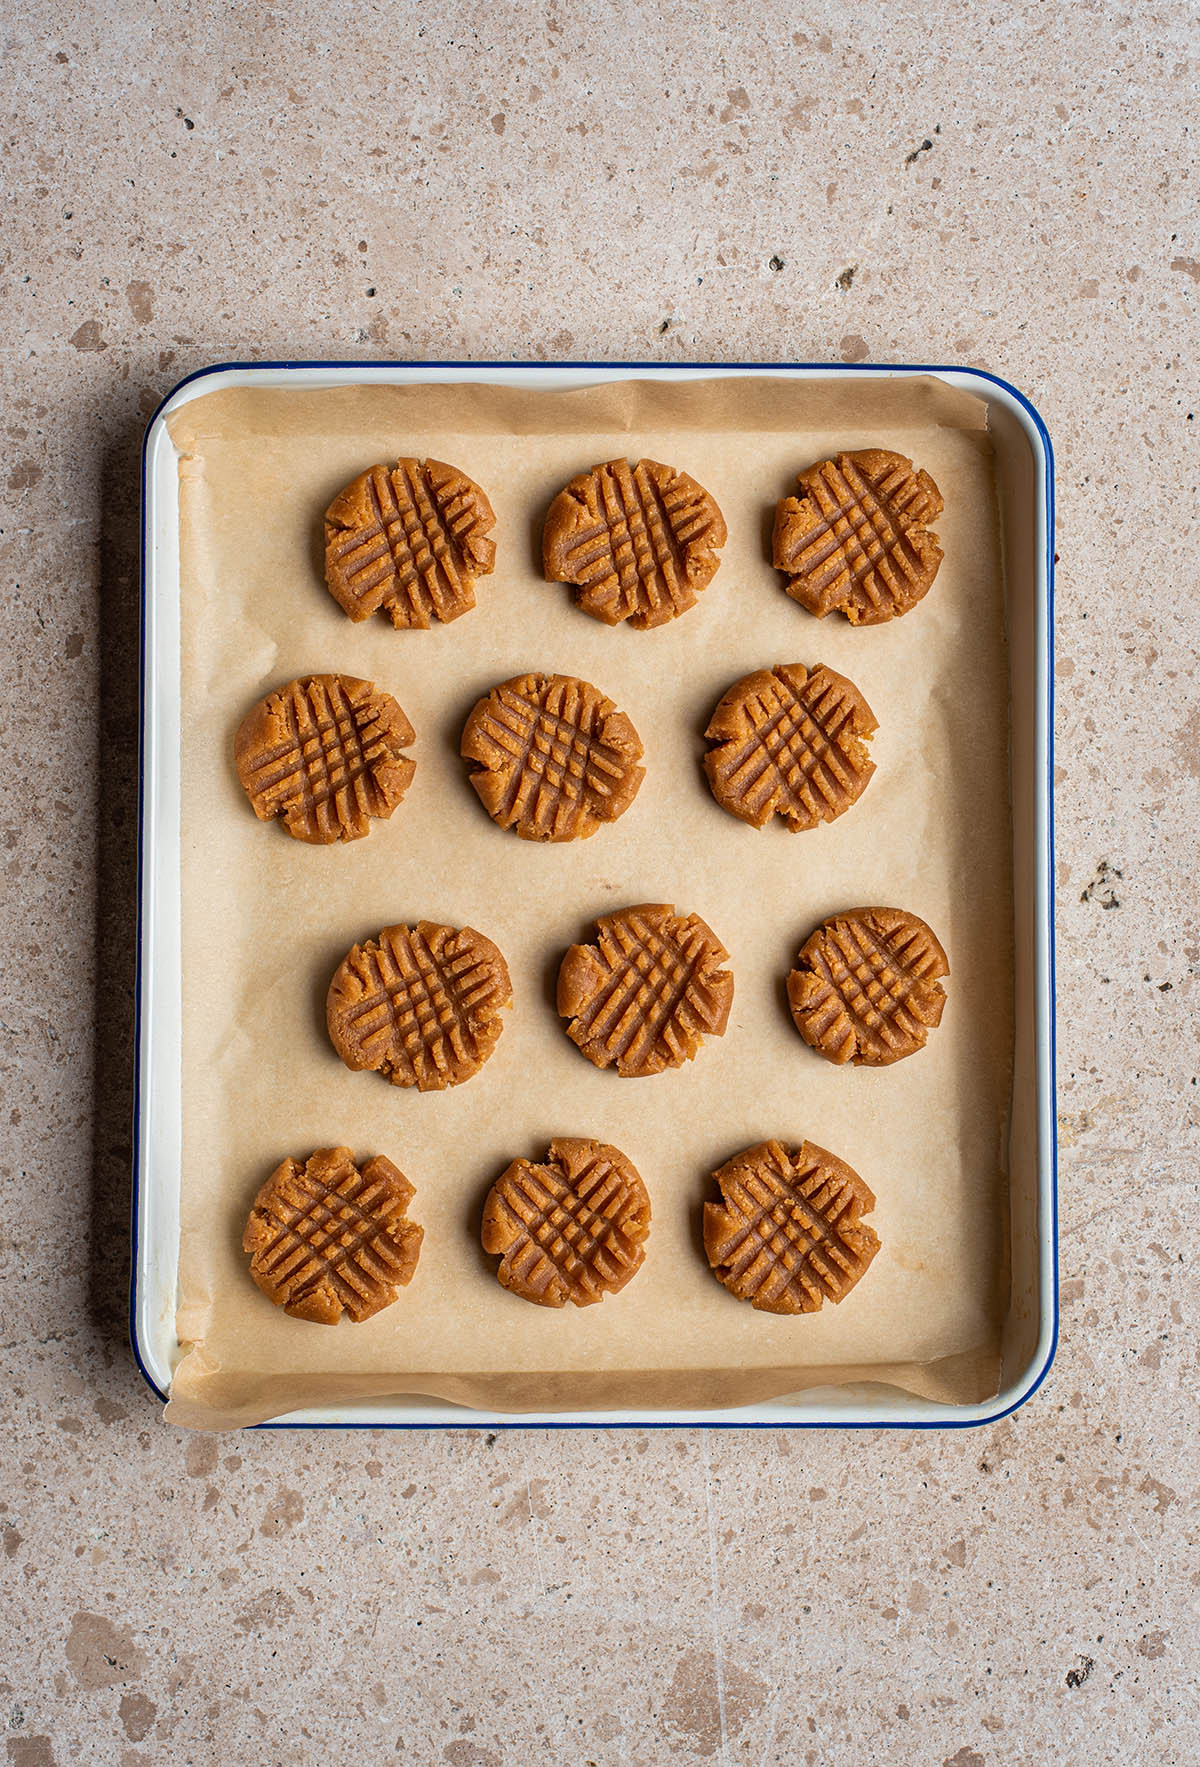 Unbaked cross-hatched peanut butter cookies on a tray, top down view.